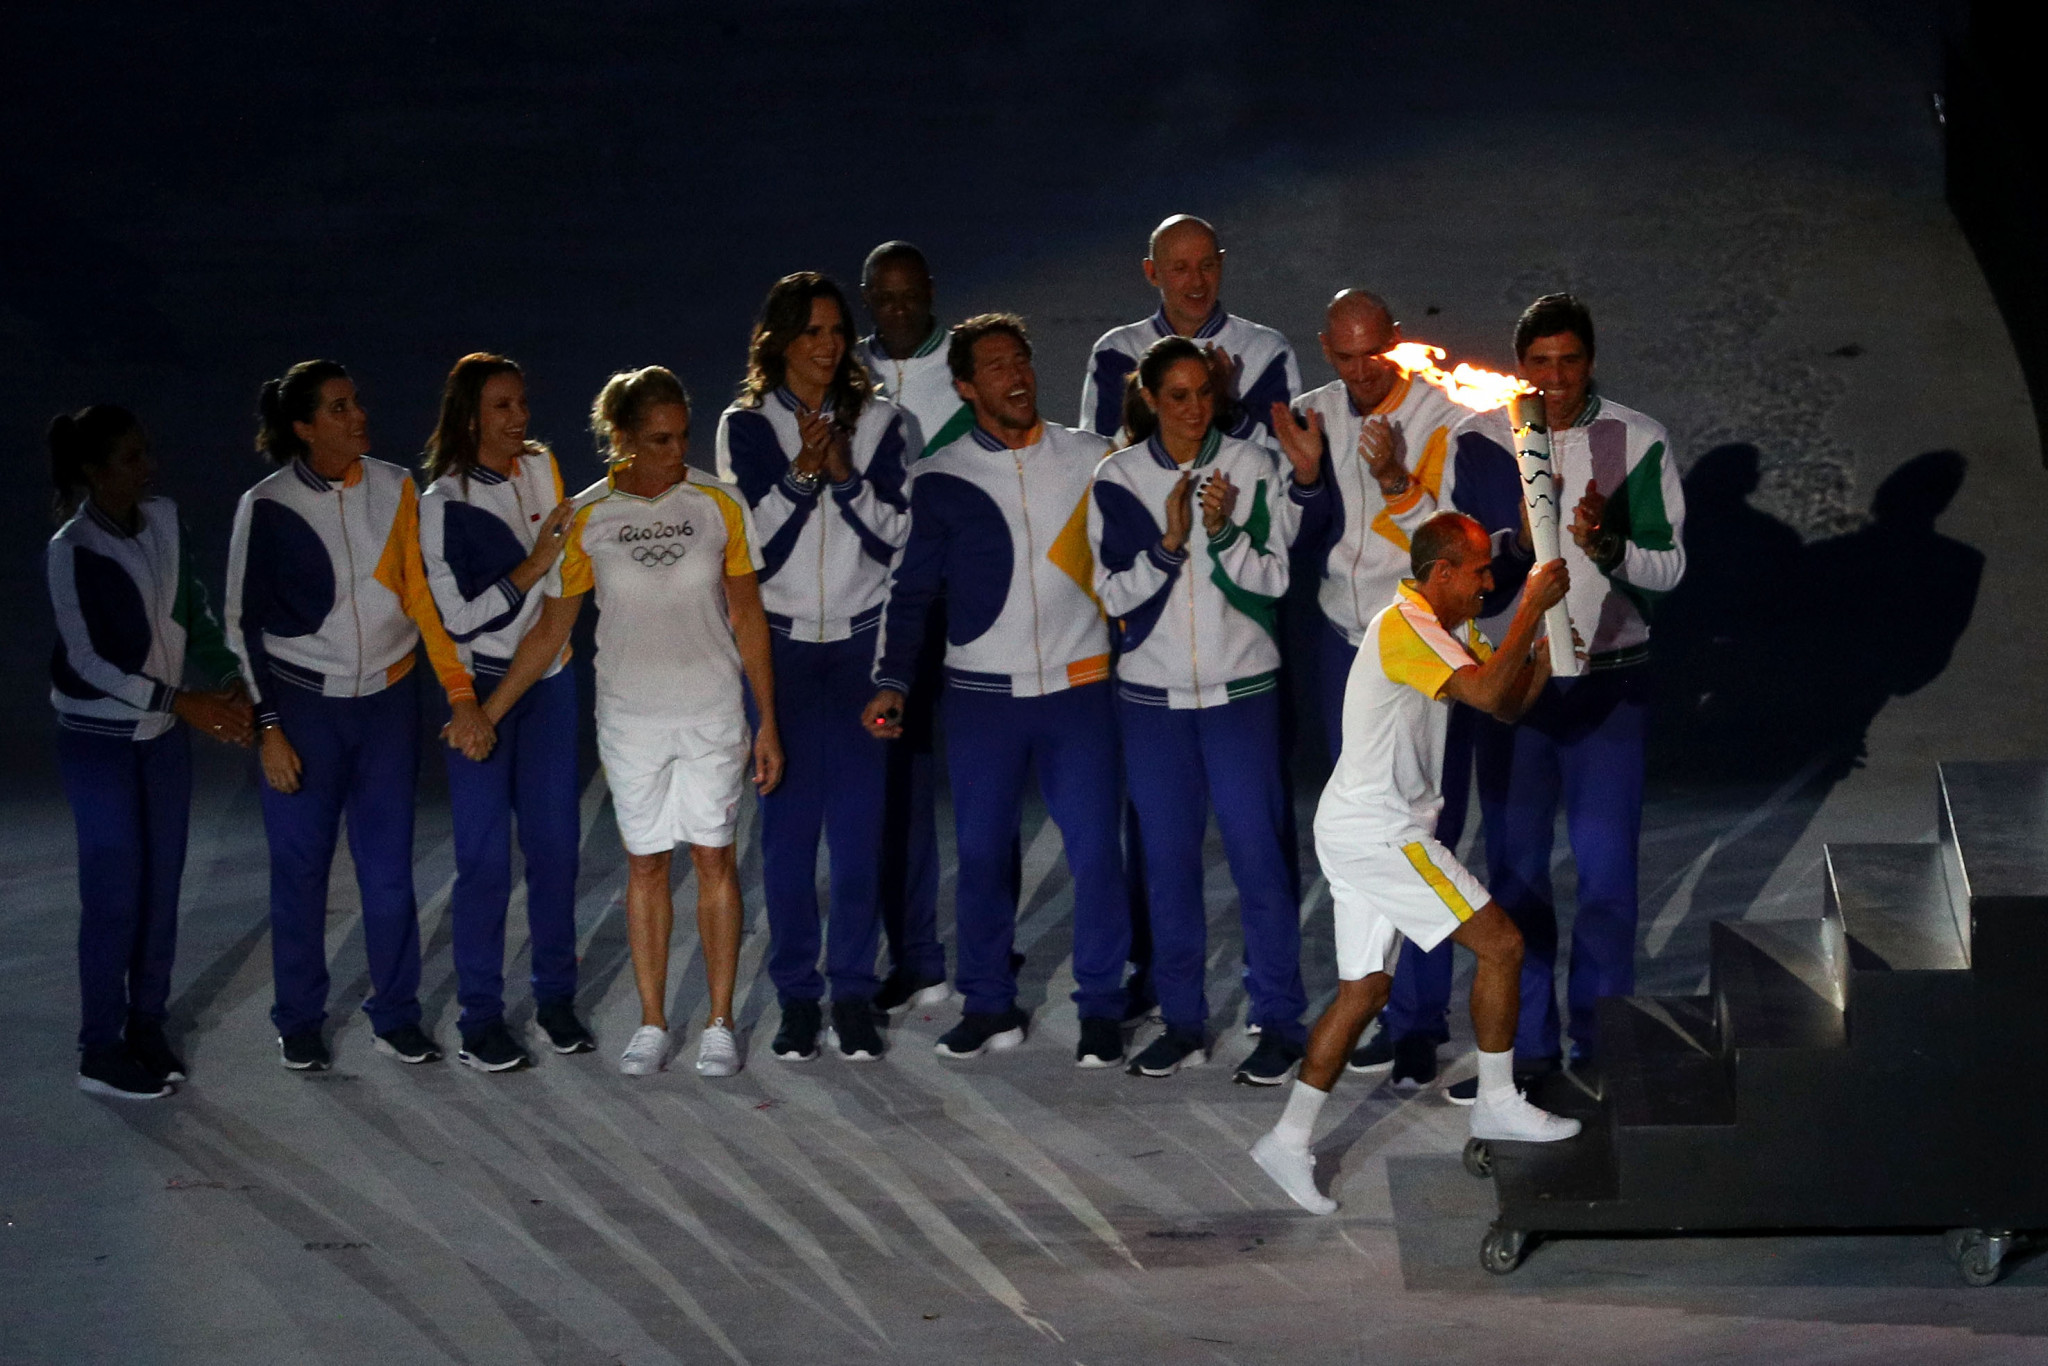 Former Brazilian athlete Vanderlei Cordeiro de Lima lights the Olympic cauldron with the Olympic torch during the opening ceremony of the Rio 2016 Olympic Games ©Getty Images